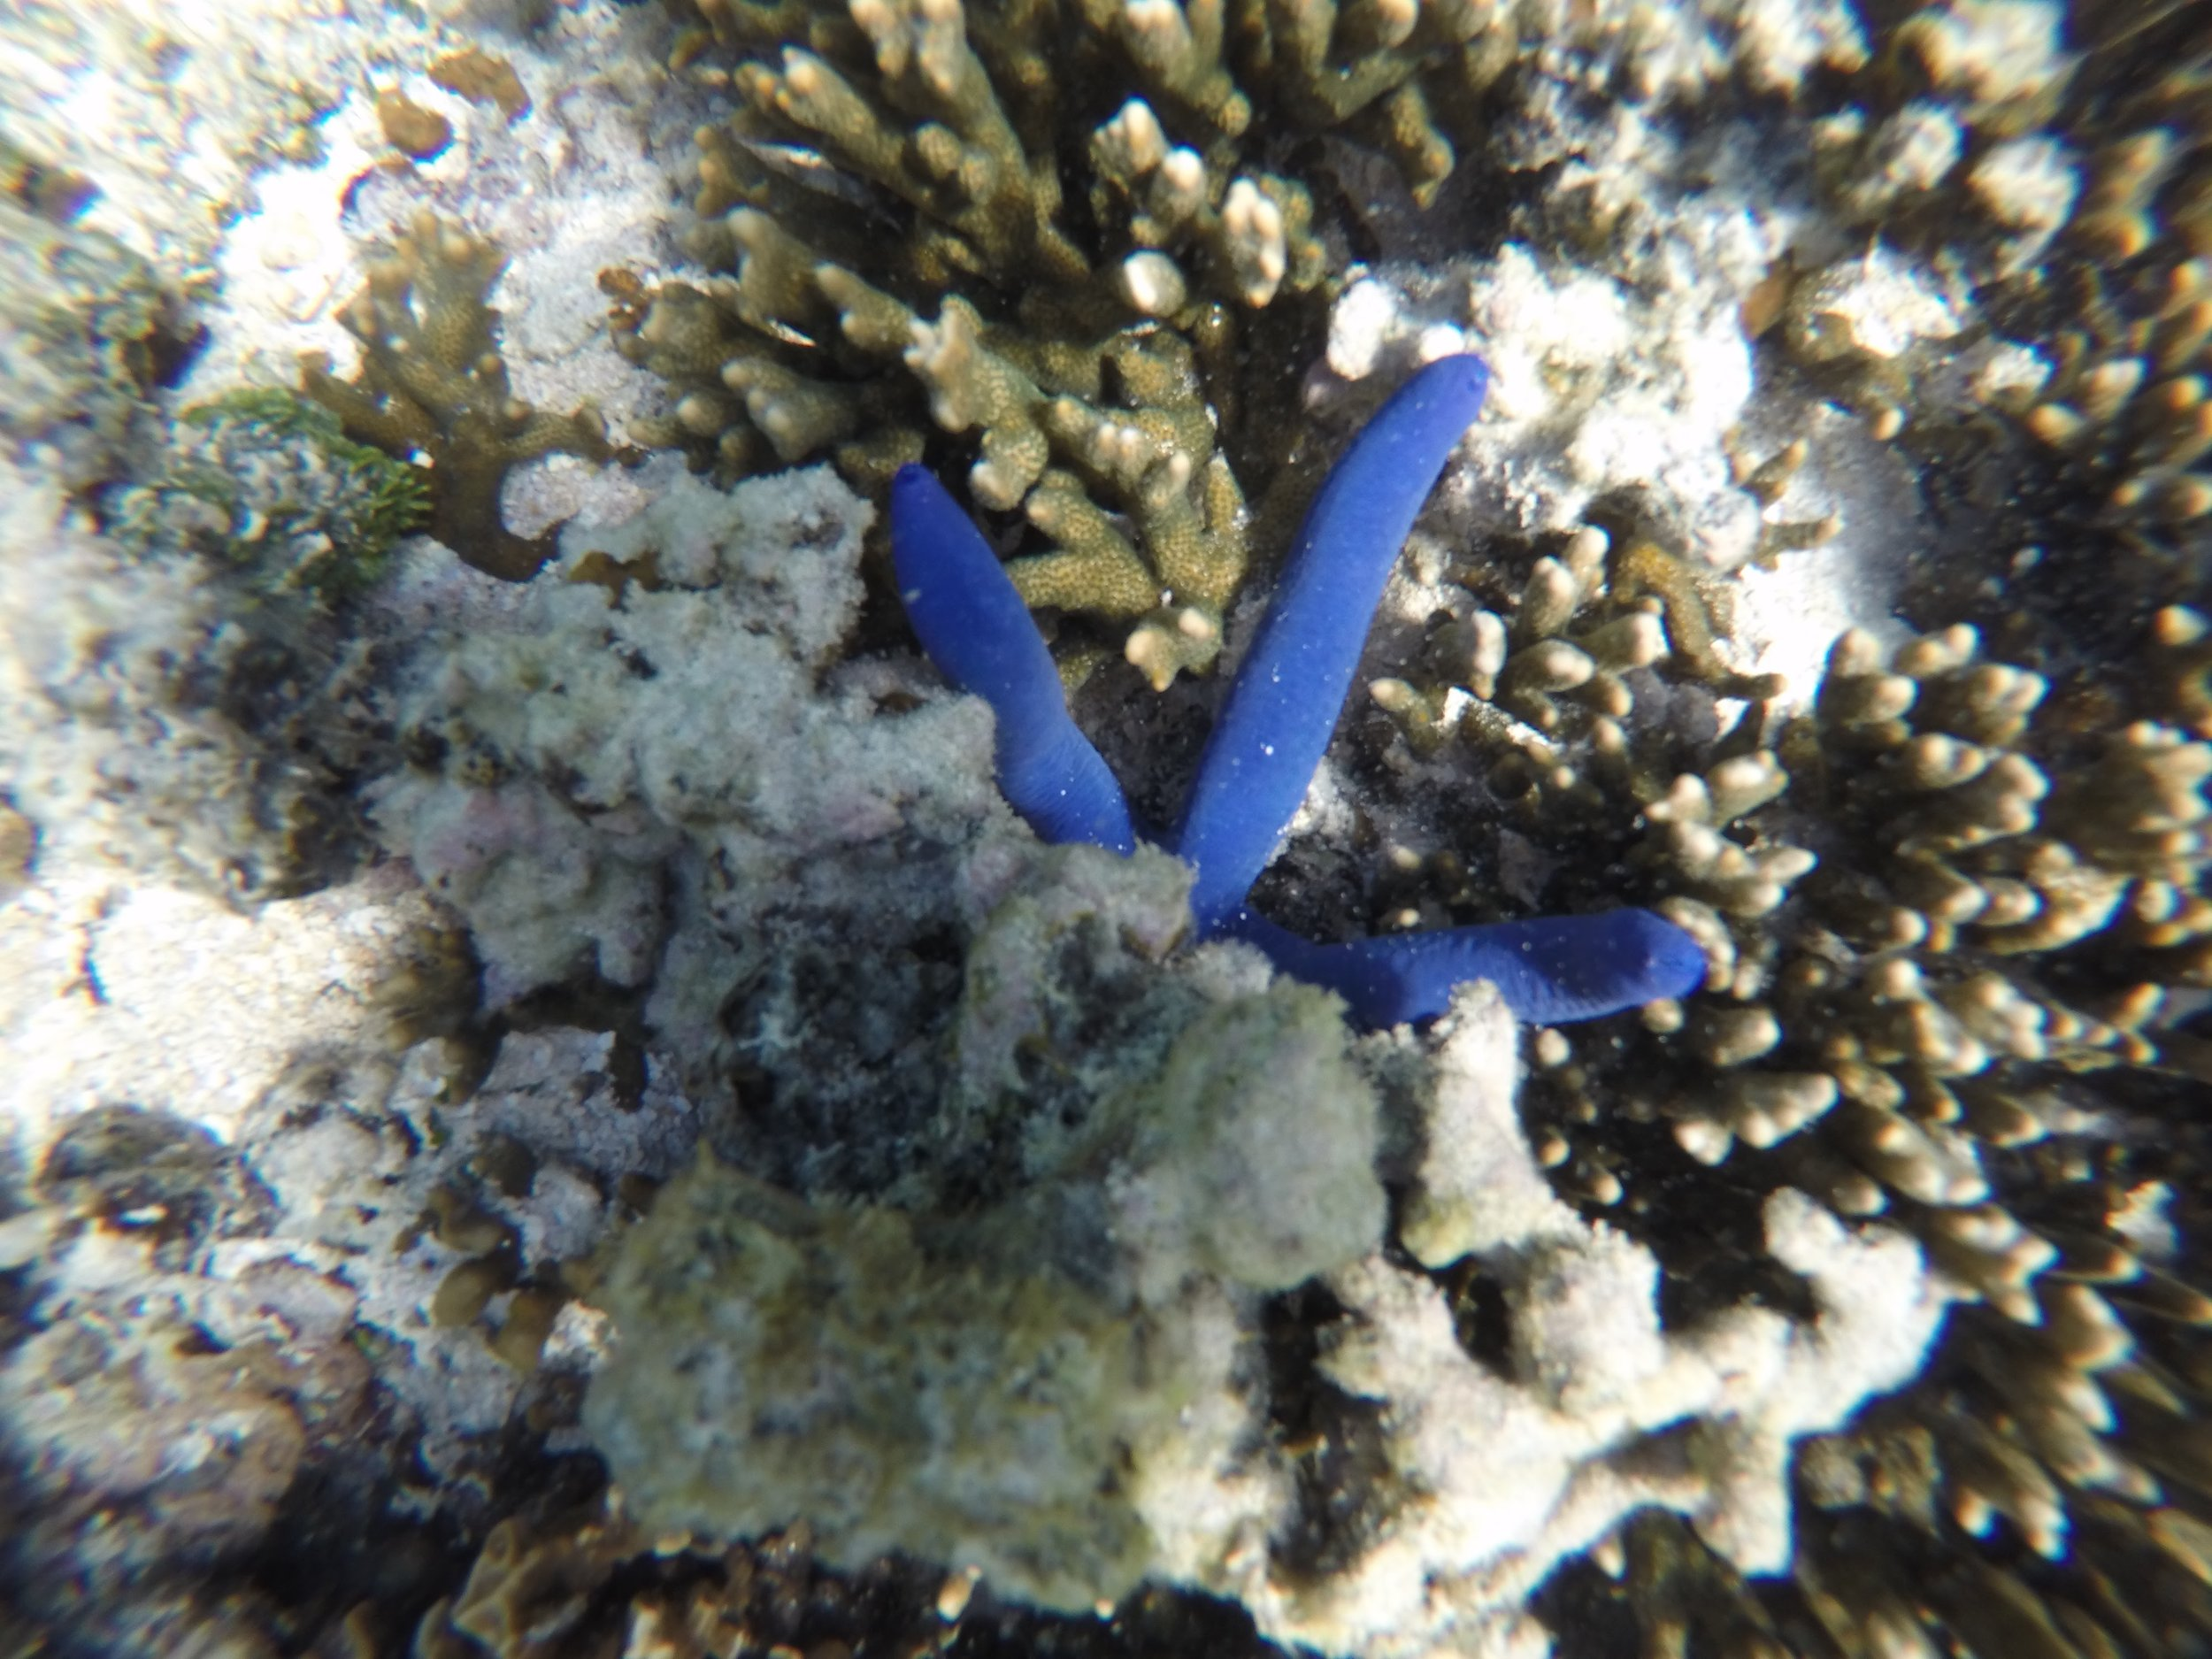 ...But we couldn't stay away from snorkeling for long. Soon we donned our masks again just off the beach, finding a couple of electric blue sea stars like this guy.